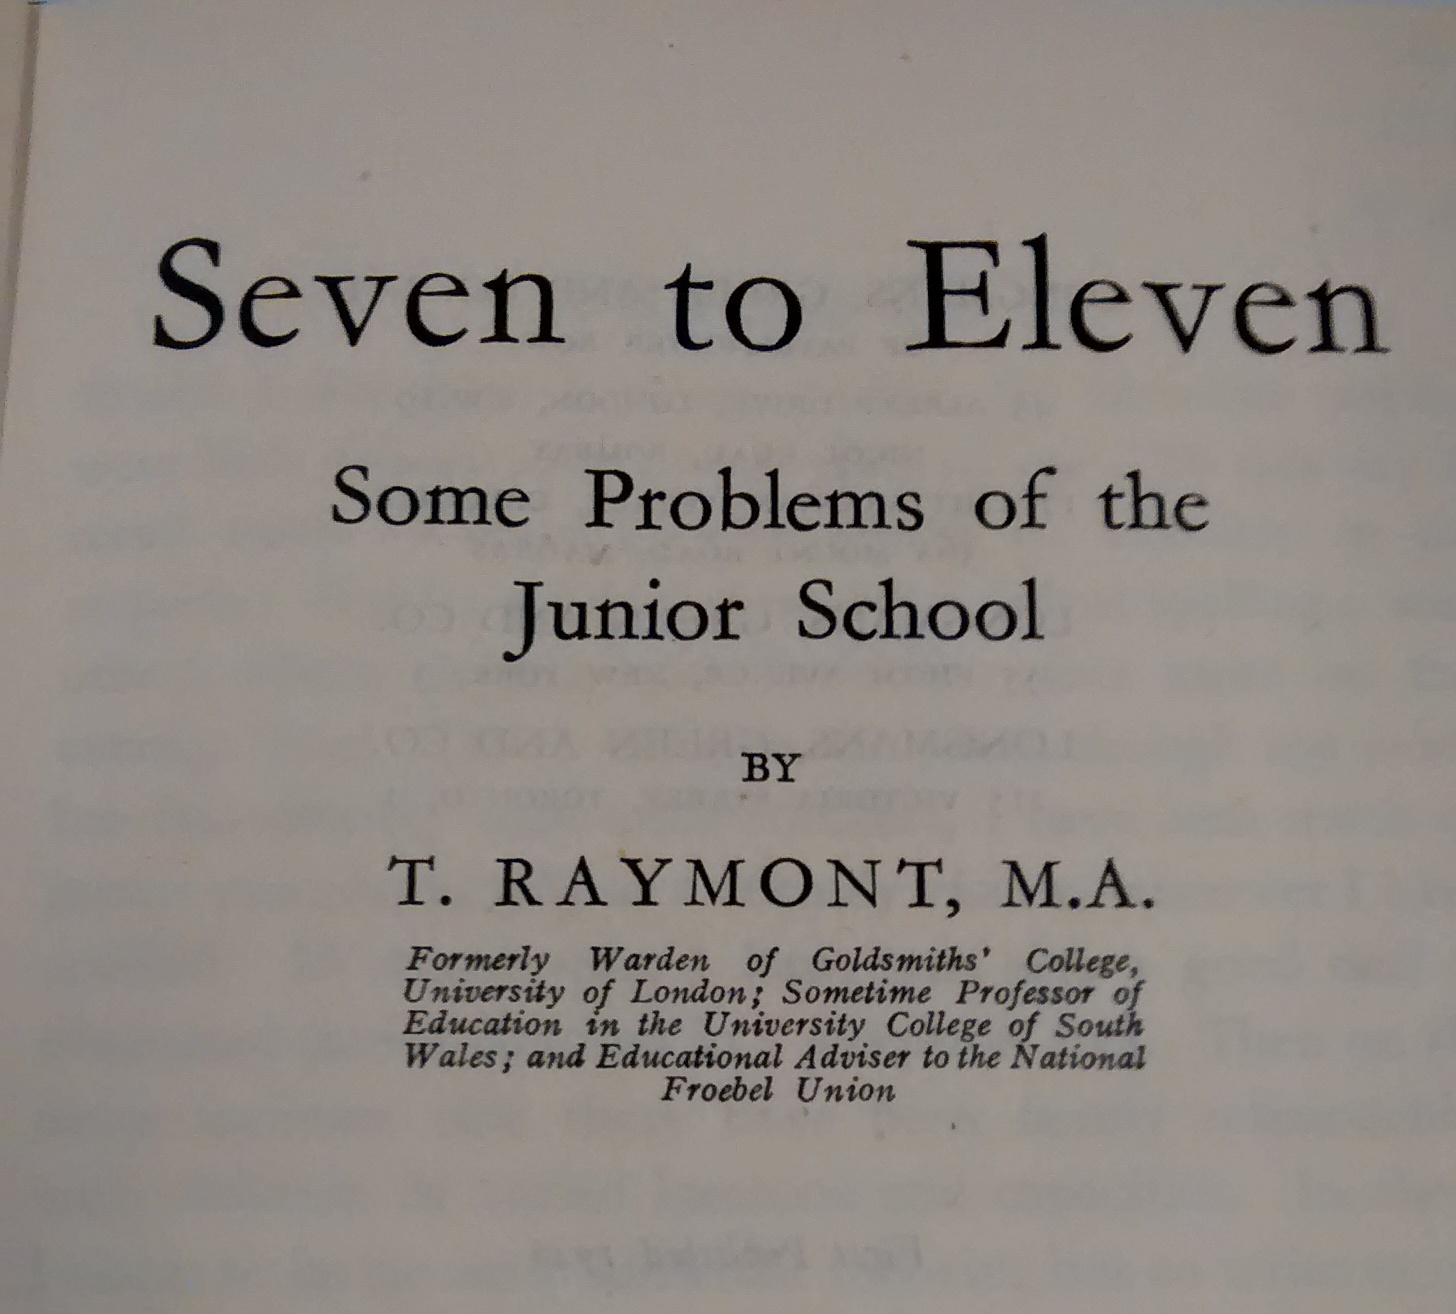 Education text from 1946.